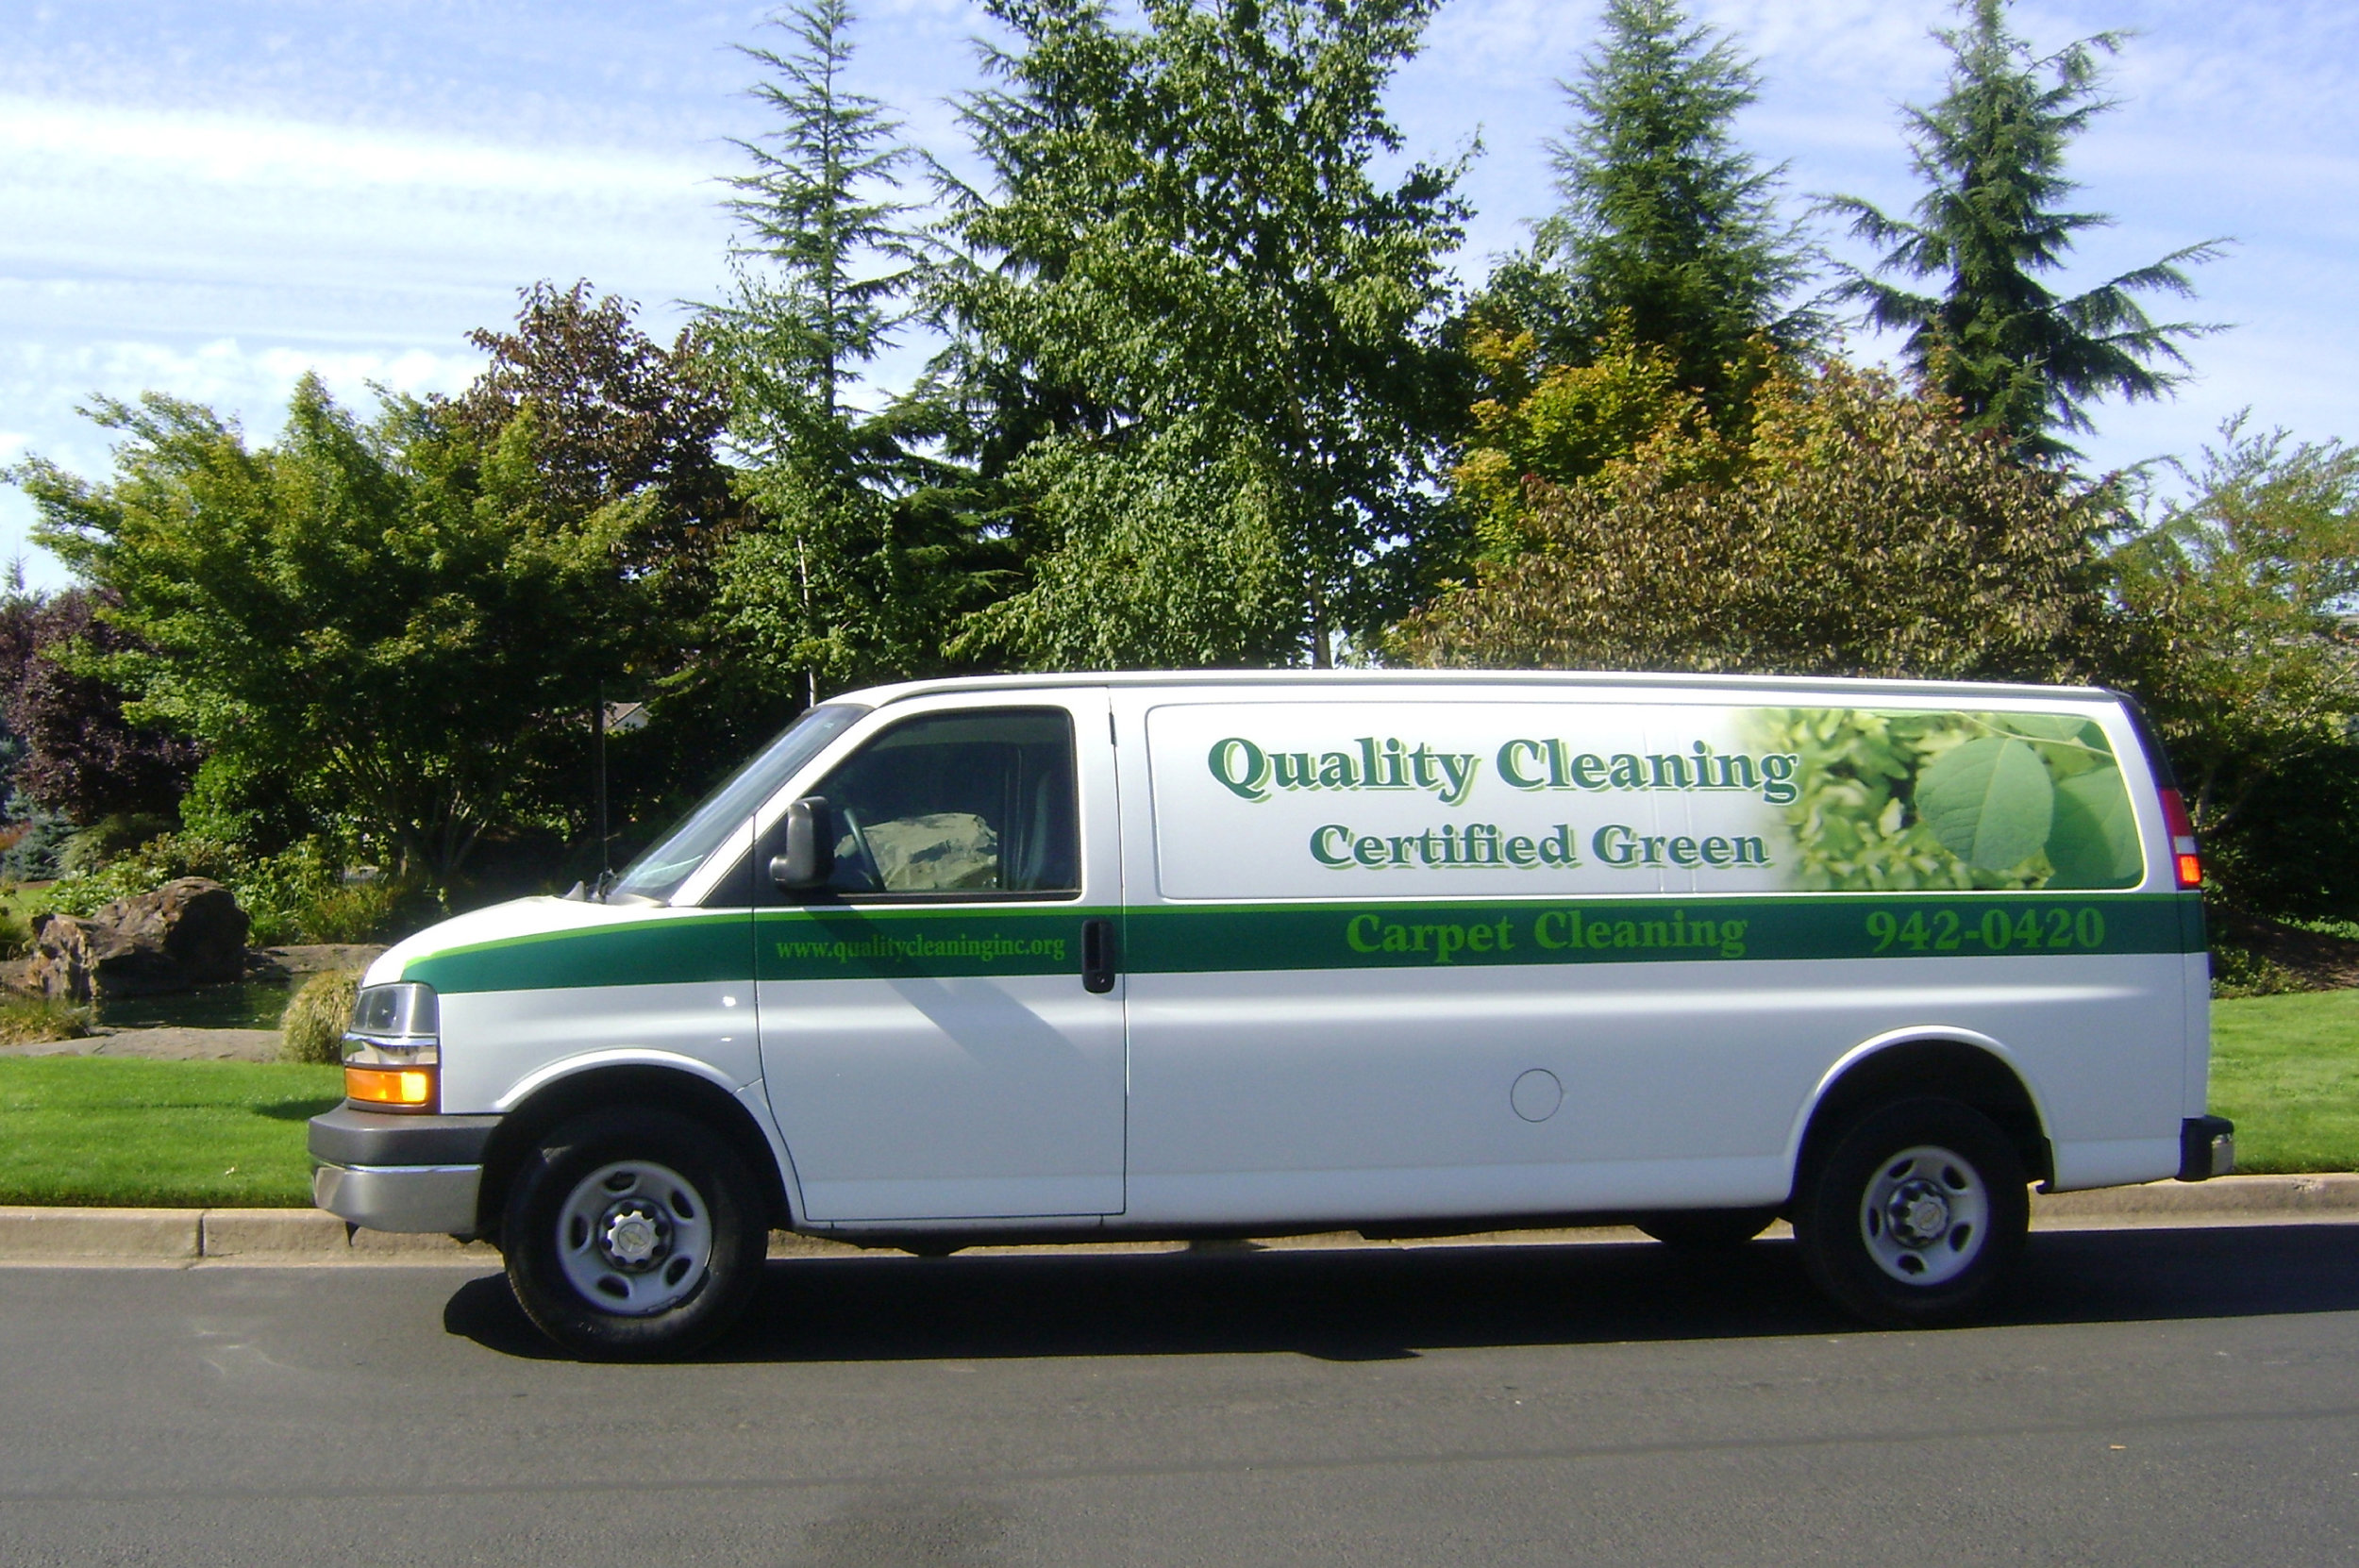 Quality Cleaning, Inc